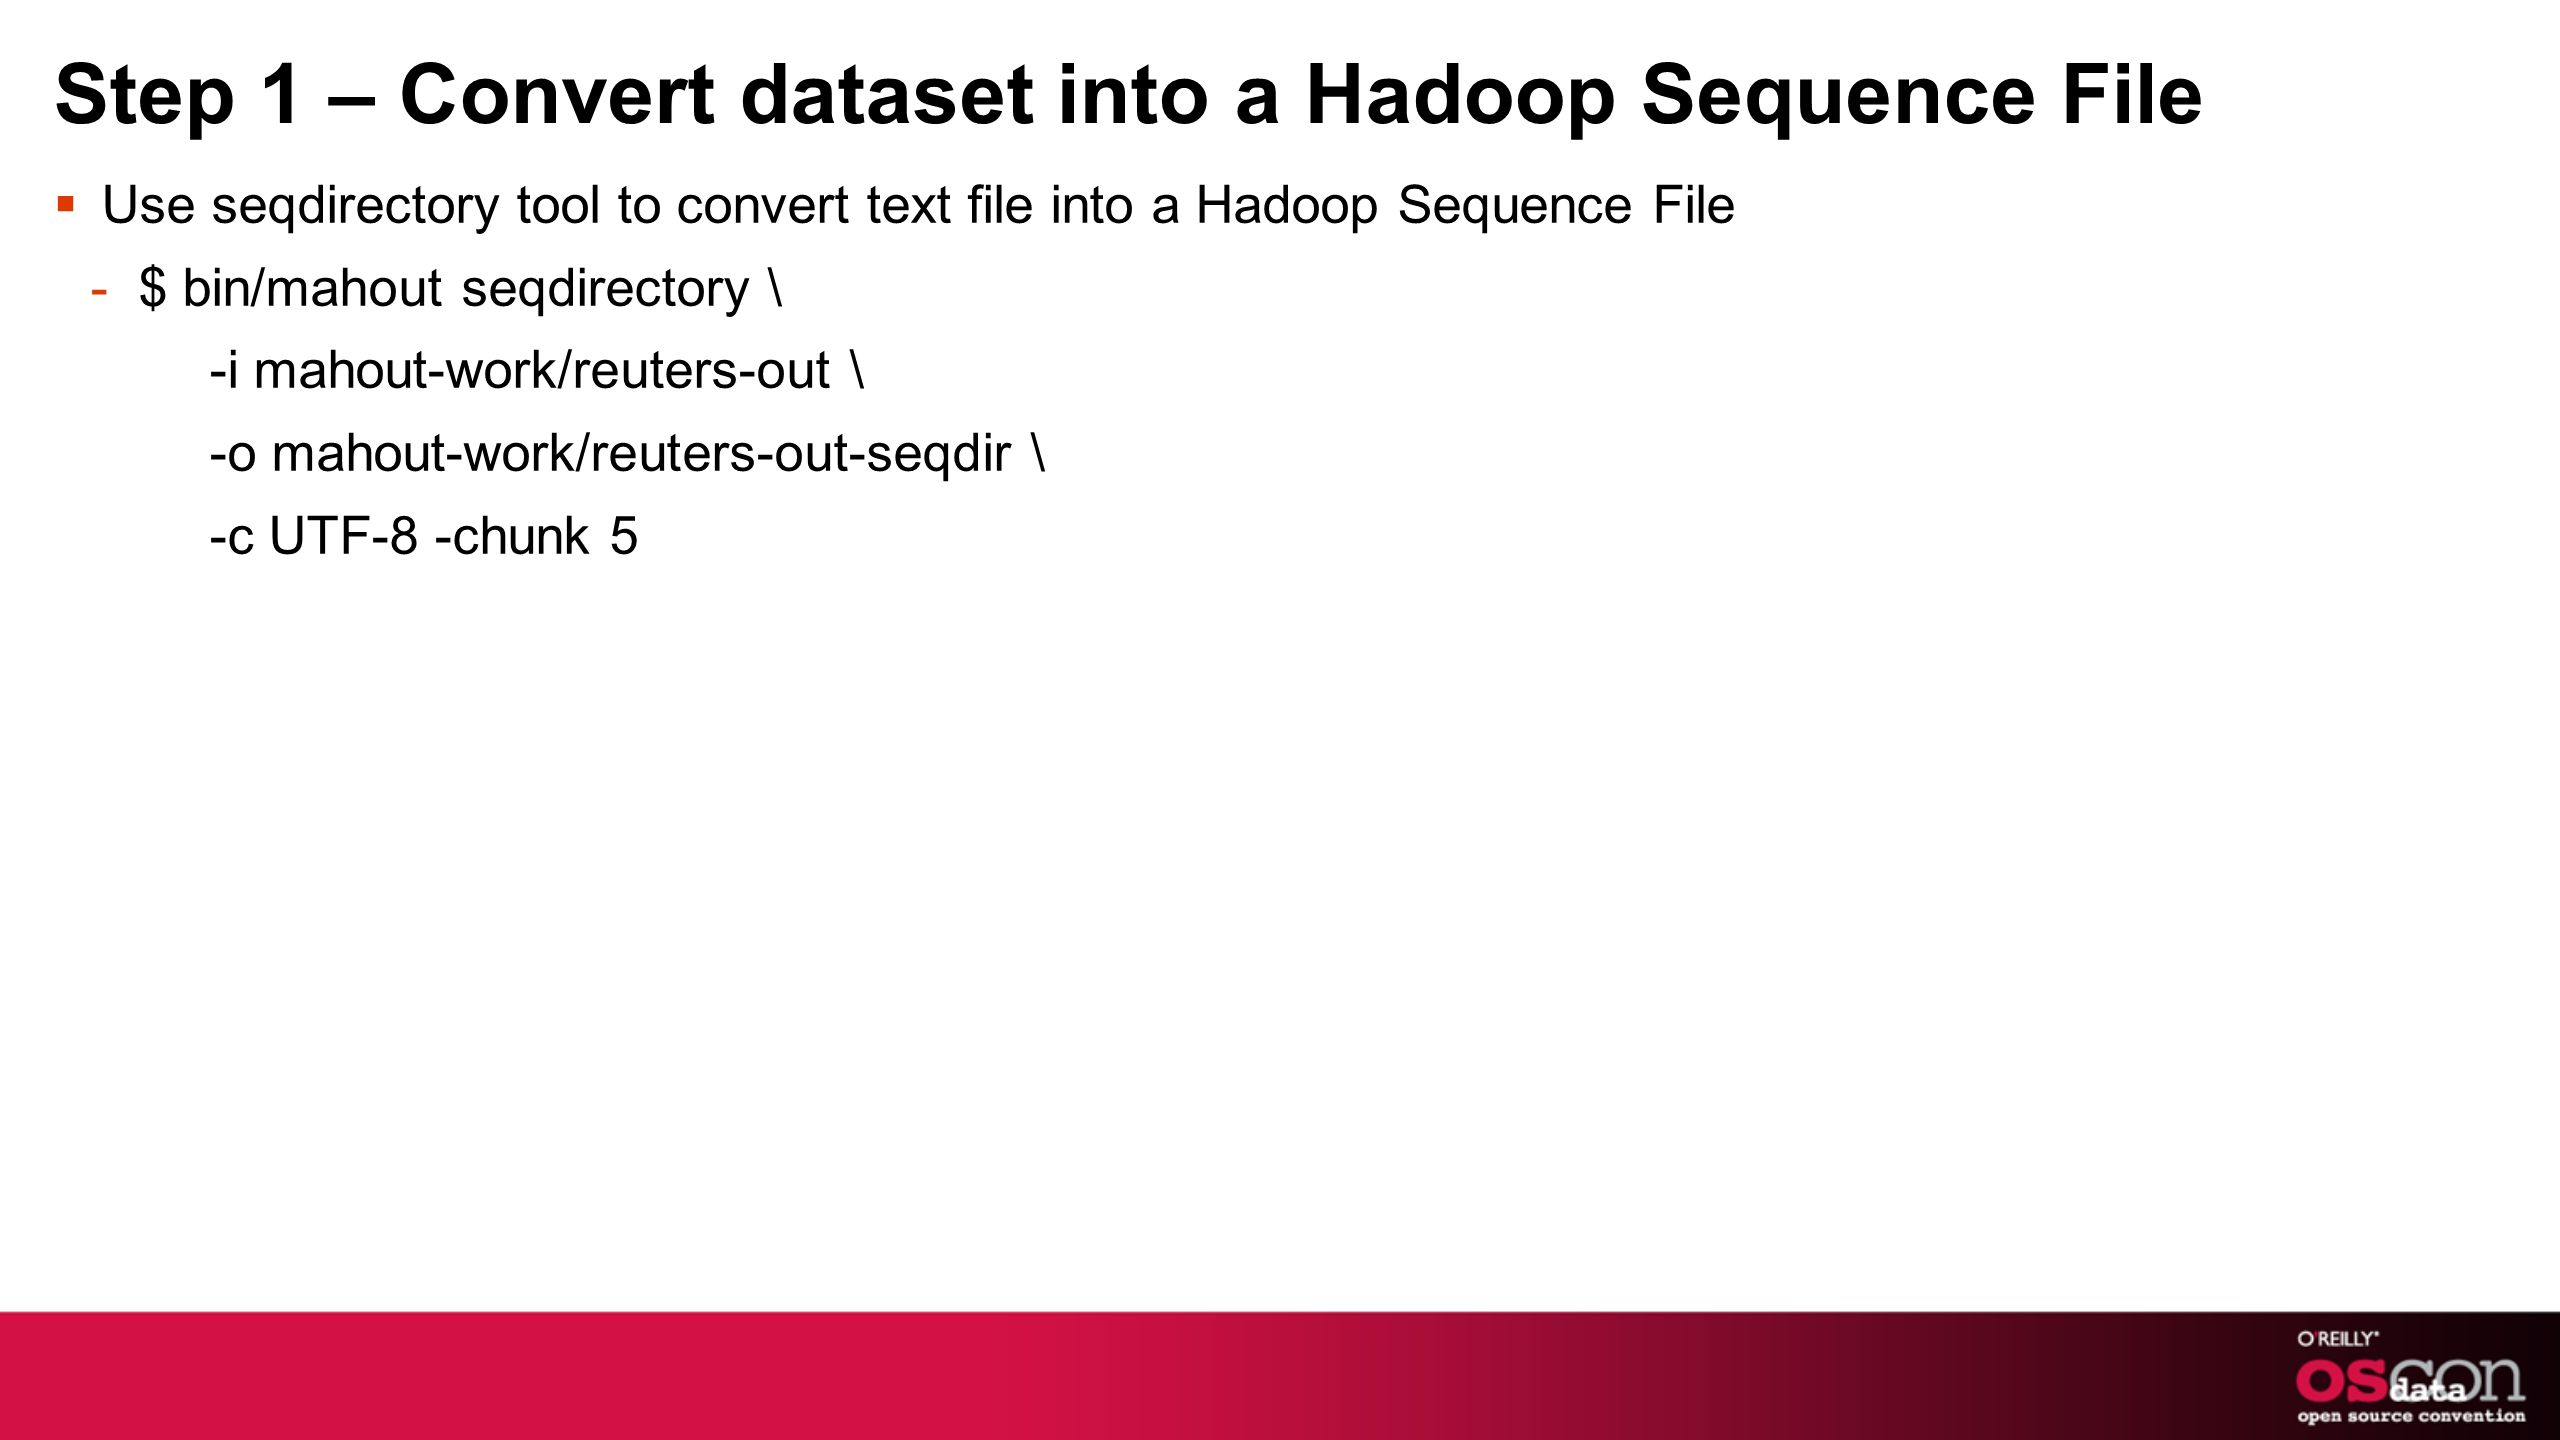 Step 1 – Convert dataset into a Hadoop Sequence File Use seqdirectory tool to convert text file into a Hadoop Sequence File -$ bin/mahout seqdirectory \ -i mahout-work/reuters-out \ -o mahout-work/reuters-out-seqdir \ -c UTF-8 -chunk 5